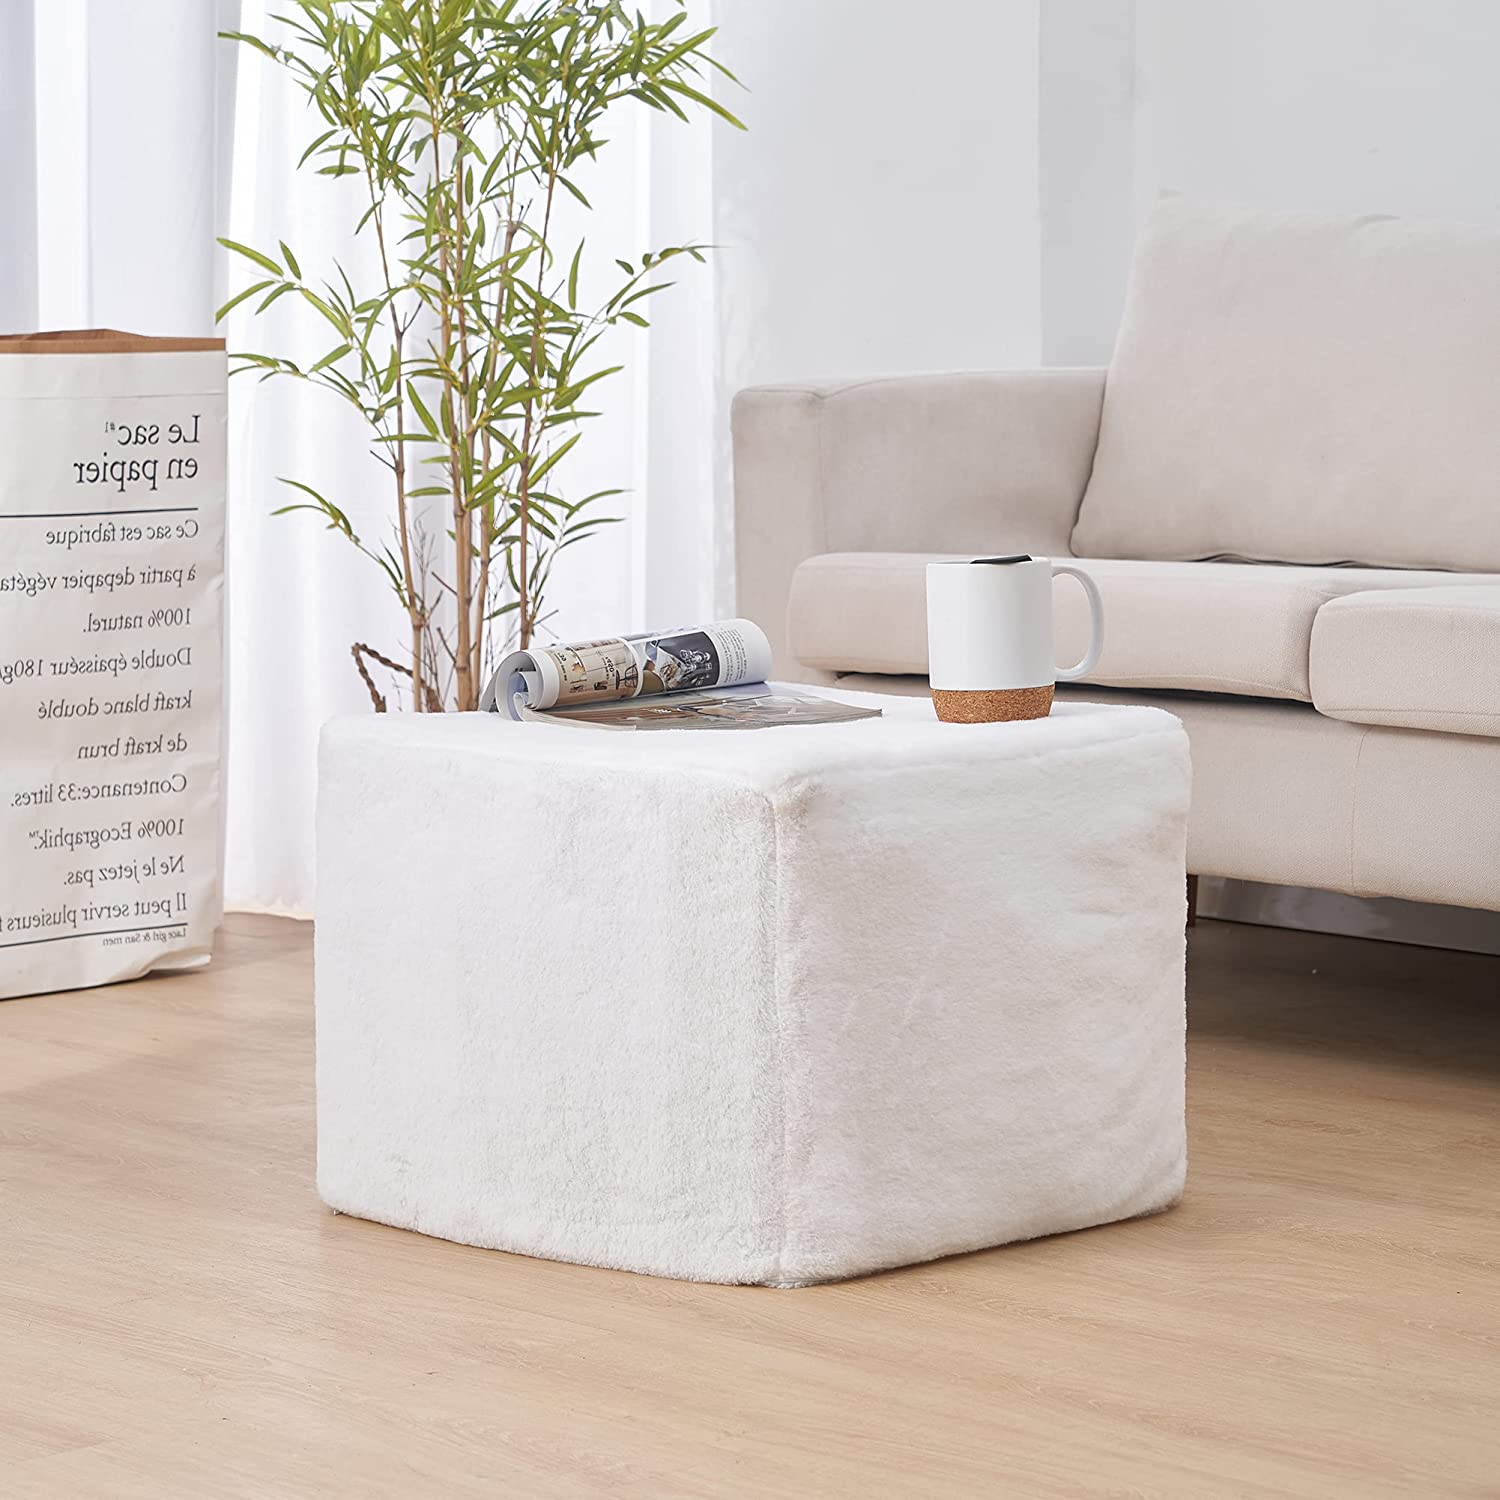 Faux Fur Unstuffed Pouf Ottoman Cover Square White | Large Fuzzy Storage Bean Bag Ottoman Pouf Foot Rest / Stool Cube | Floor Cushion Seat | Storage Poofs for Living Room & Bedroom | Cover ONLY